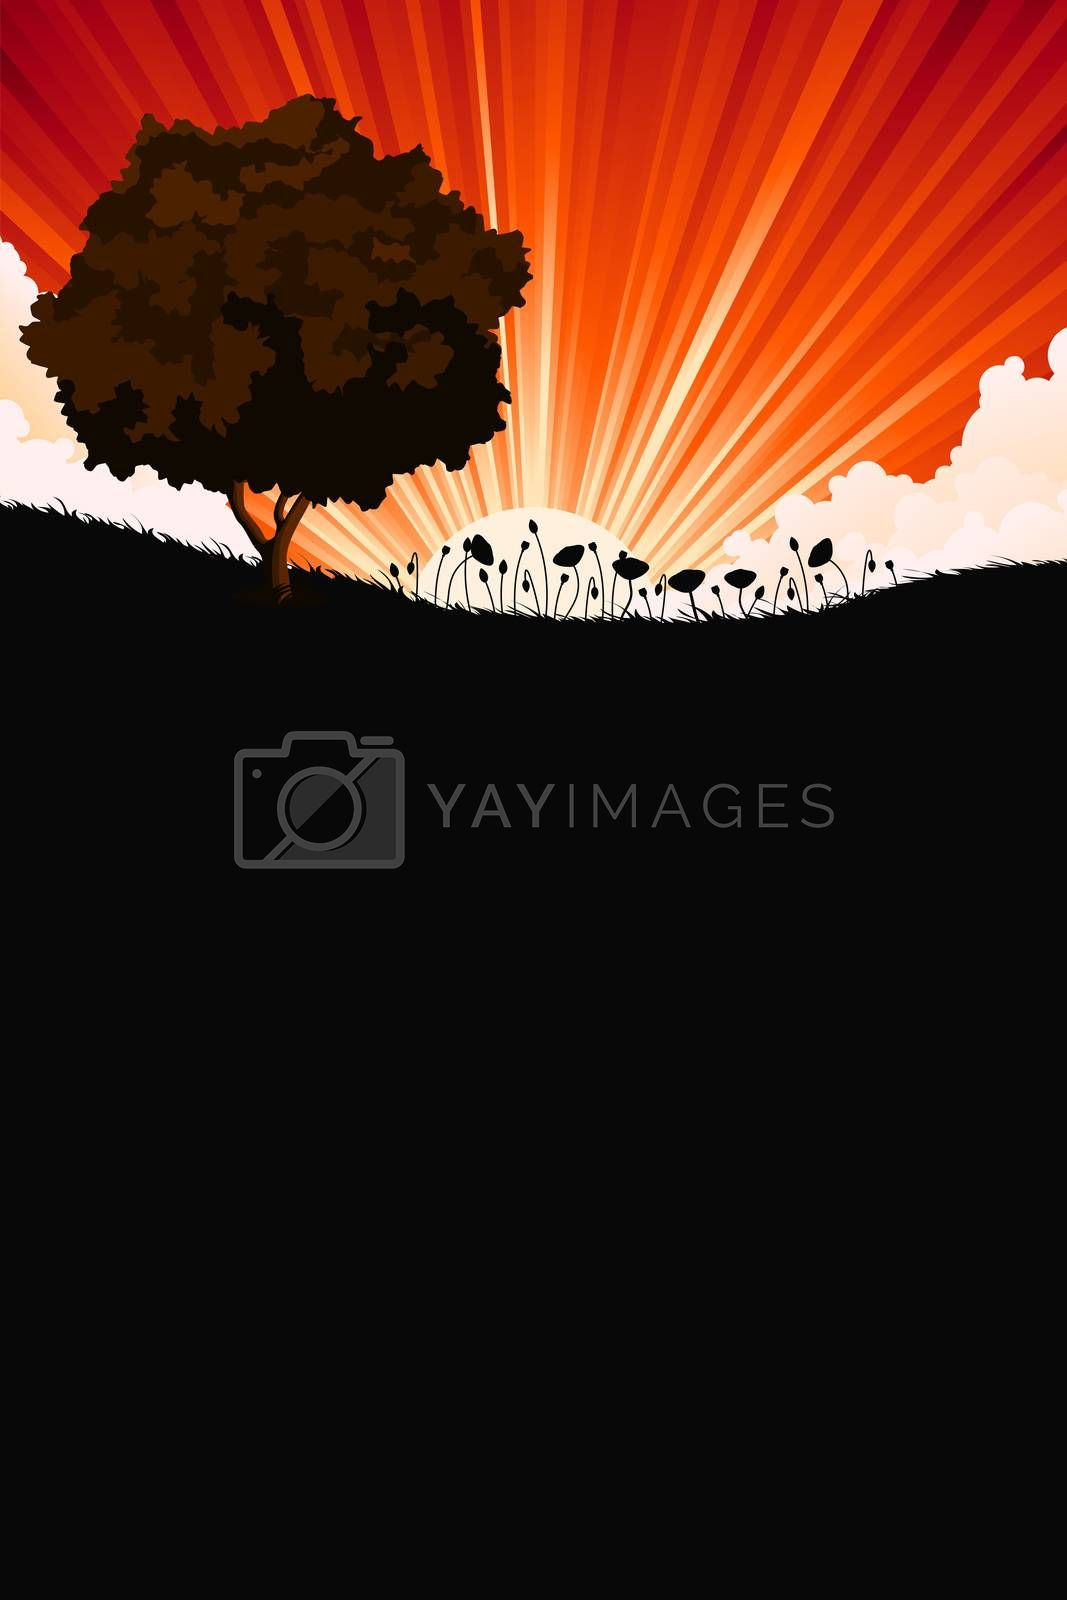 Nature sunrize landscape with tree and flowers by WaD